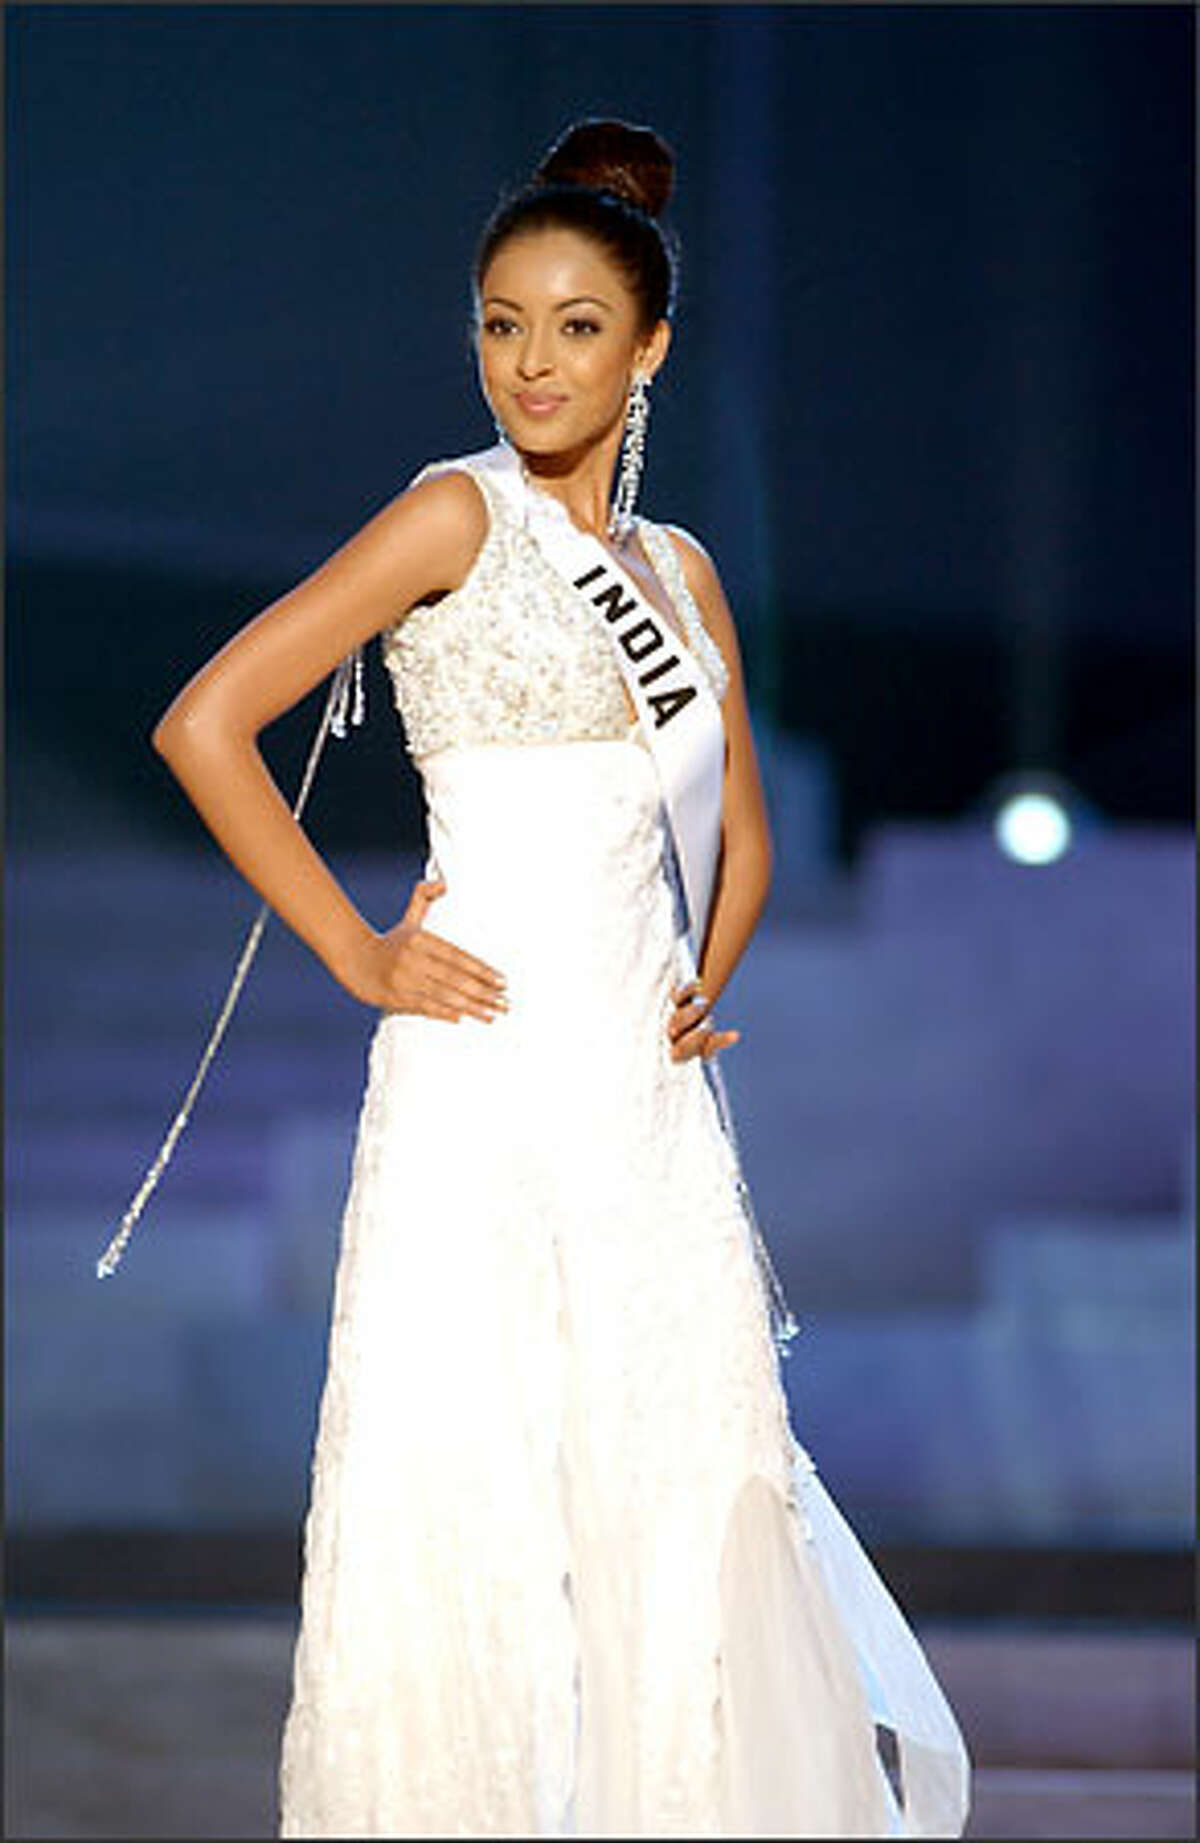 Tanushree Dutta, Miss India, competes in an evening gown of her choice during the 2004 Miss Universe Presentation Show at CEMEXPO in Quito, Ecuador on May 27. Each delegate is judged by a preliminary panel of distinguished judges in three categories consisting of individual interviews, swimsuit competition and evening gown competition. The scores will be tallied and the top 15 delegates will be announced during the NBC broadcast of the 53rd annual Miss Universe competition from Quito on June 1 at 9 p.m. (delayed PT).